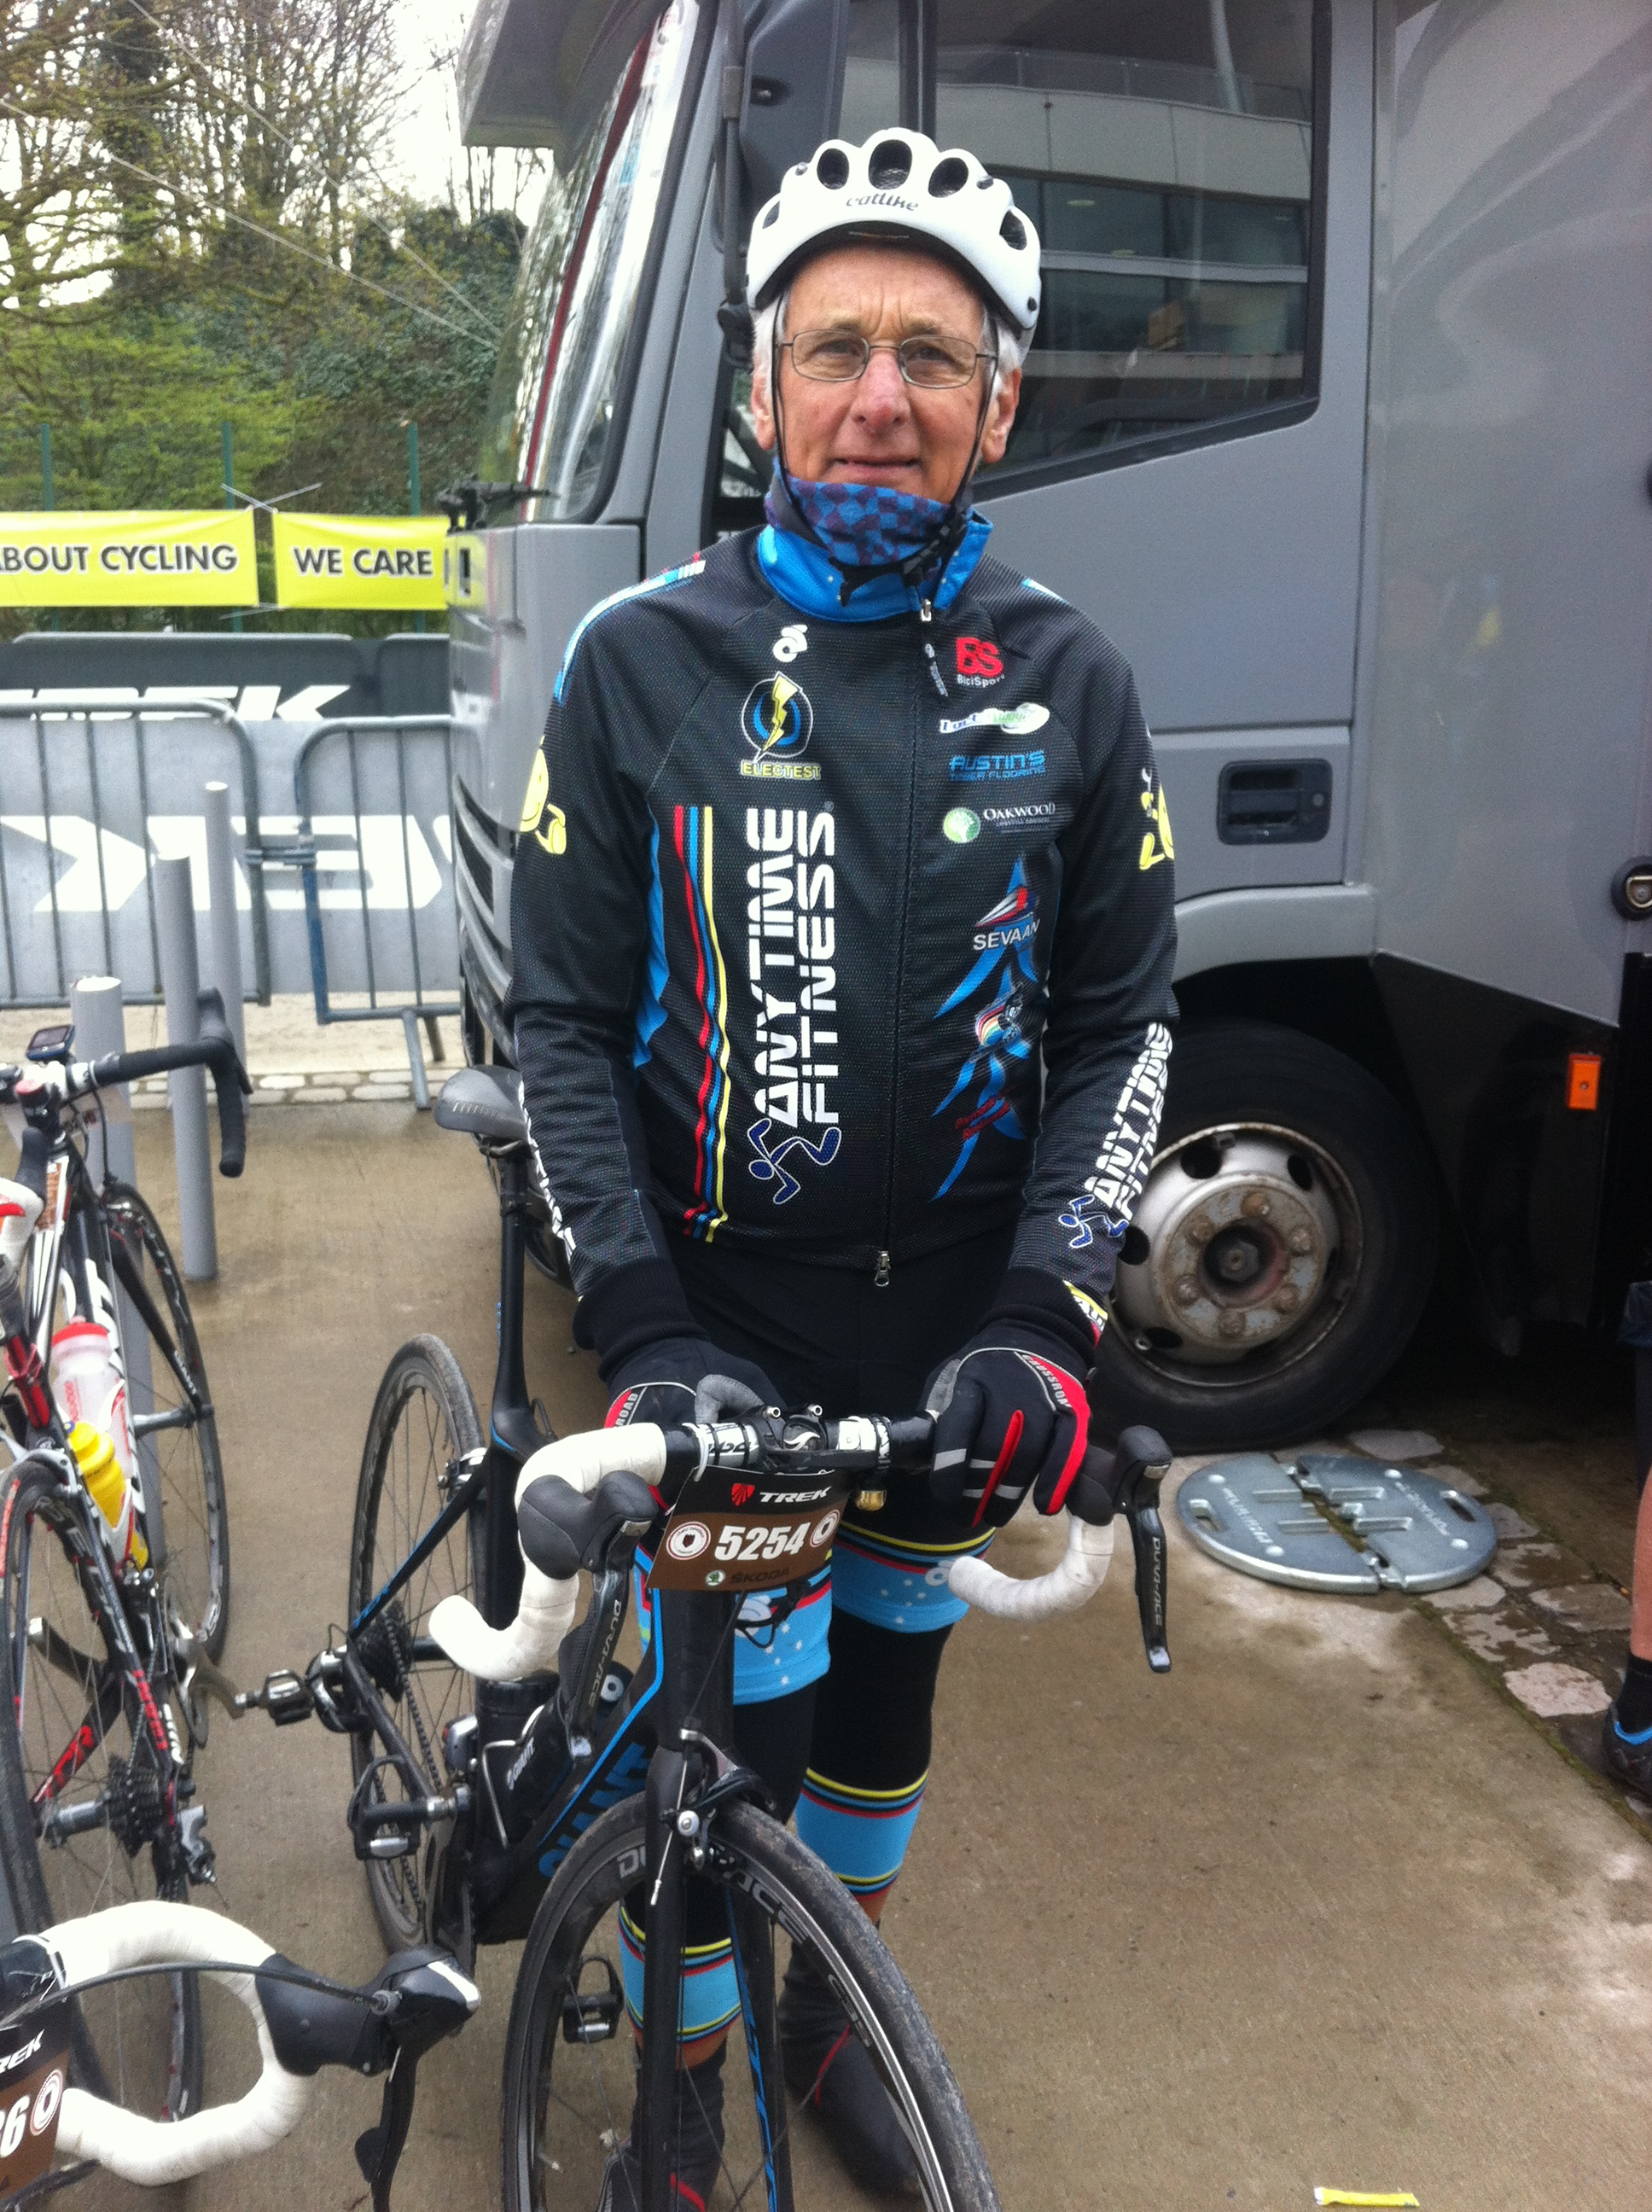 Speedy recovery to John Crouchley who suffered a broken collarbone on a training ride